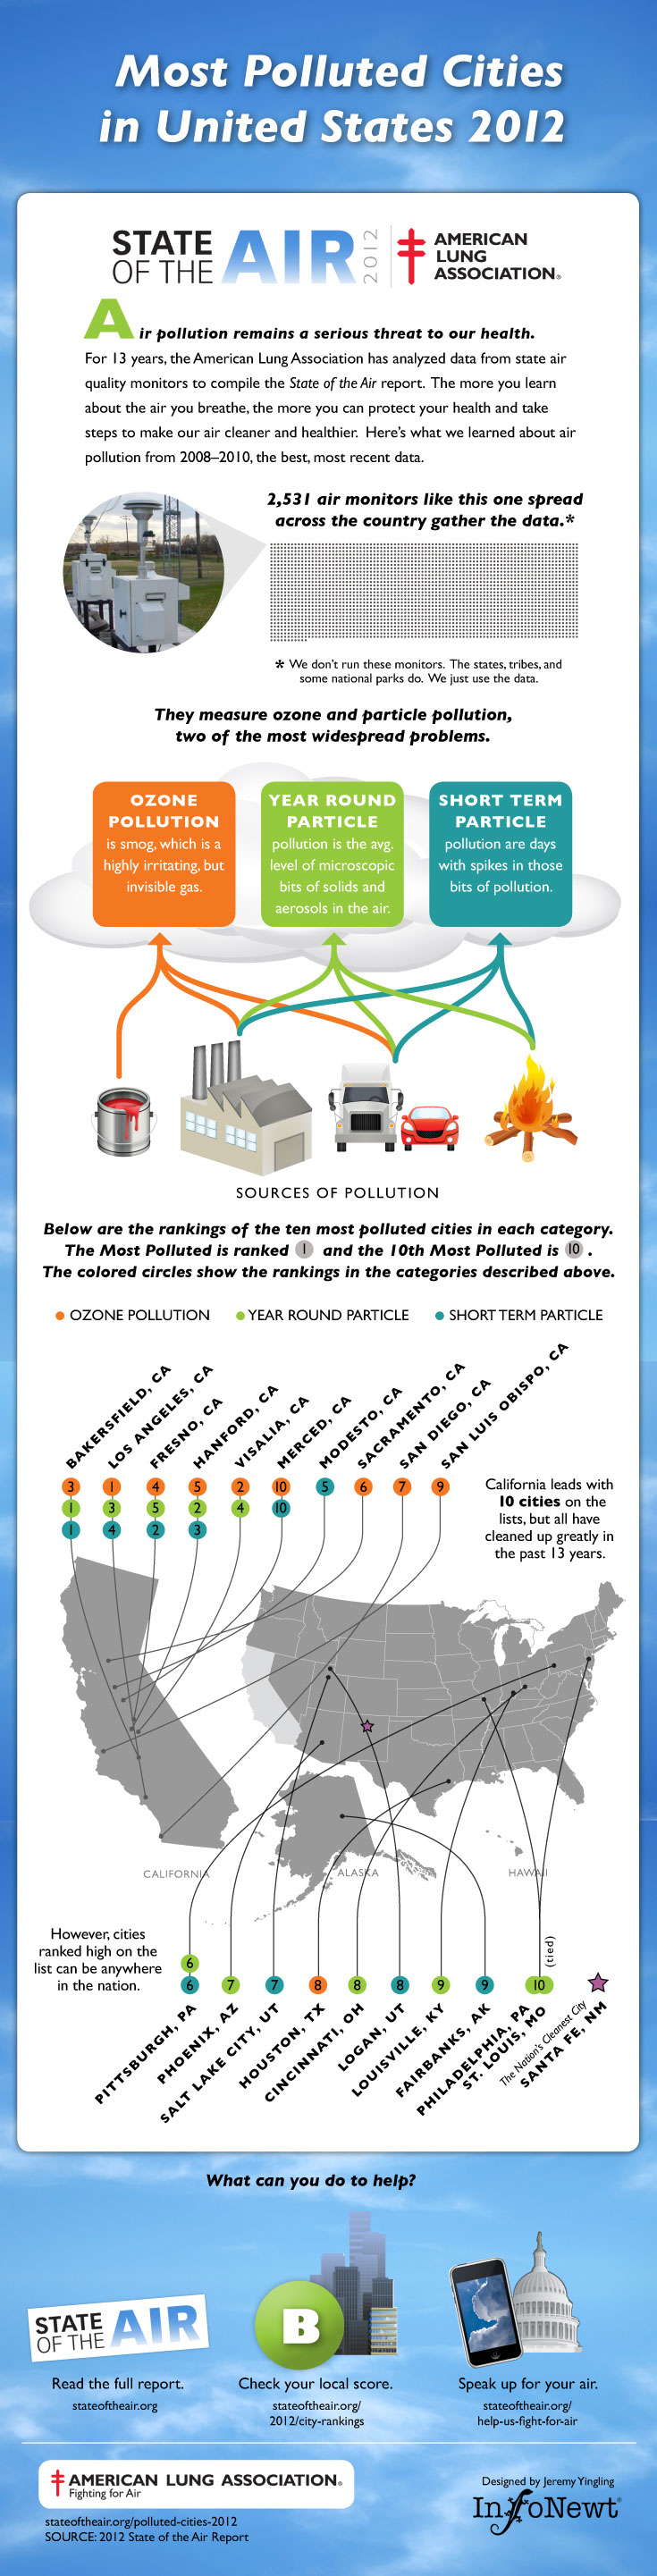 Most-Polluted-Cities-In-Us-2012-infographic